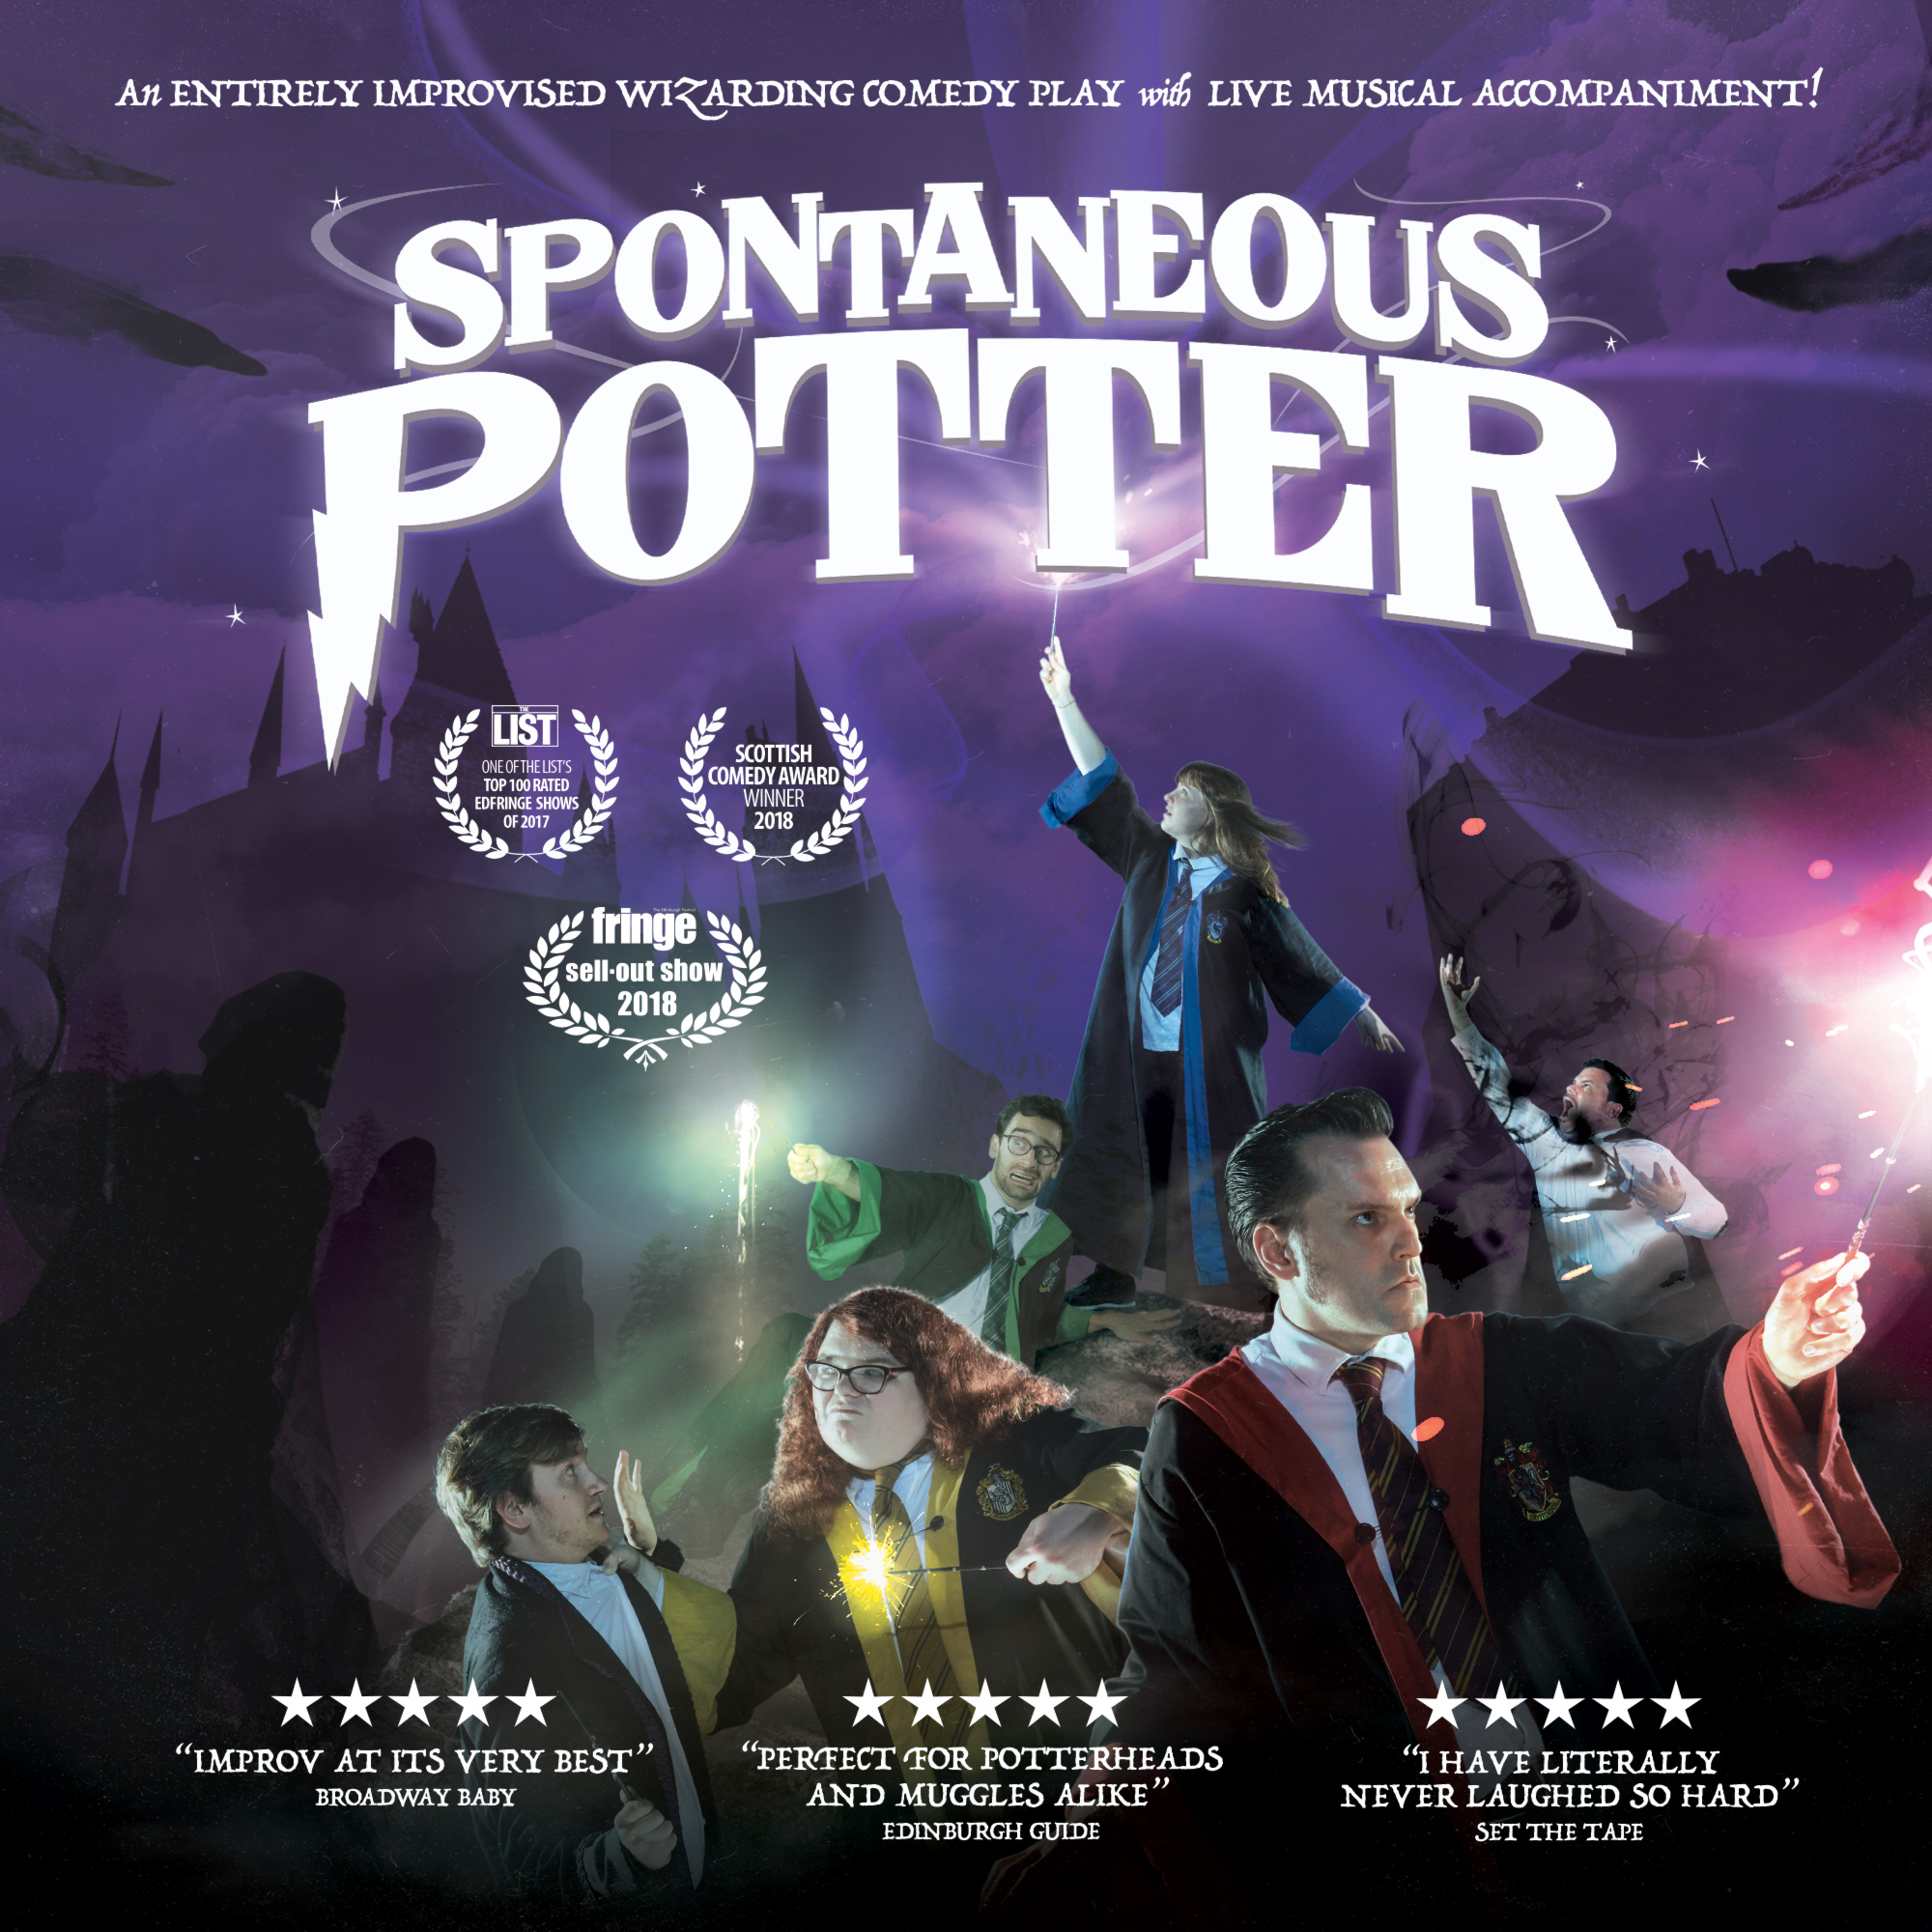 Event image for Spontaneous Potter at Camberely Theatre